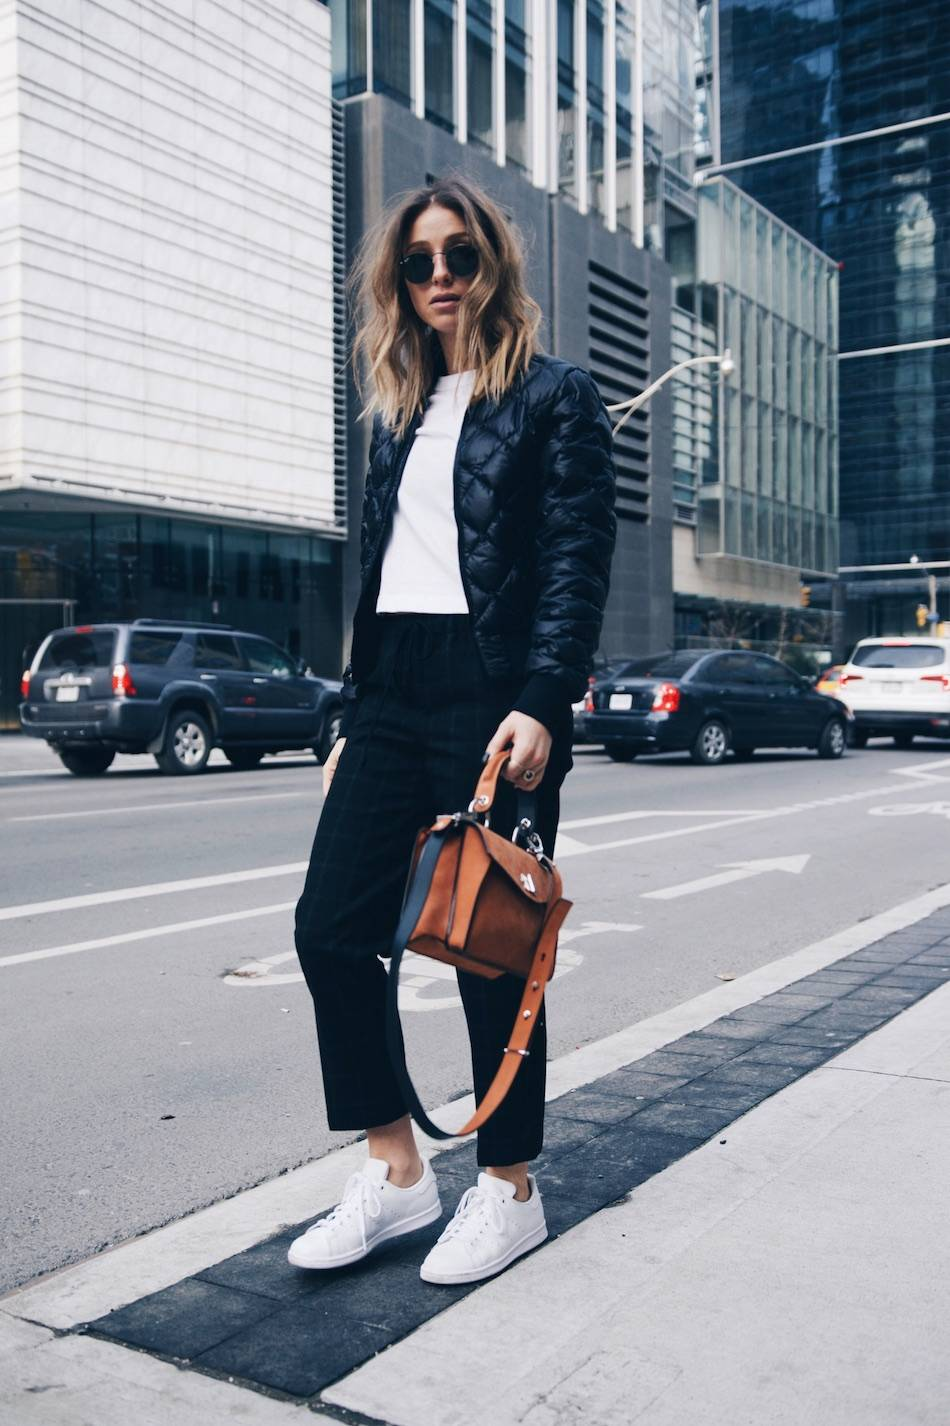 Style and beauty blogger Jill Lansky of The August Diaries on morning routine in athletic fashion trend 2017 Adidas stan smith, bomber jacket, white tee, Proenza Schouler Hava bag